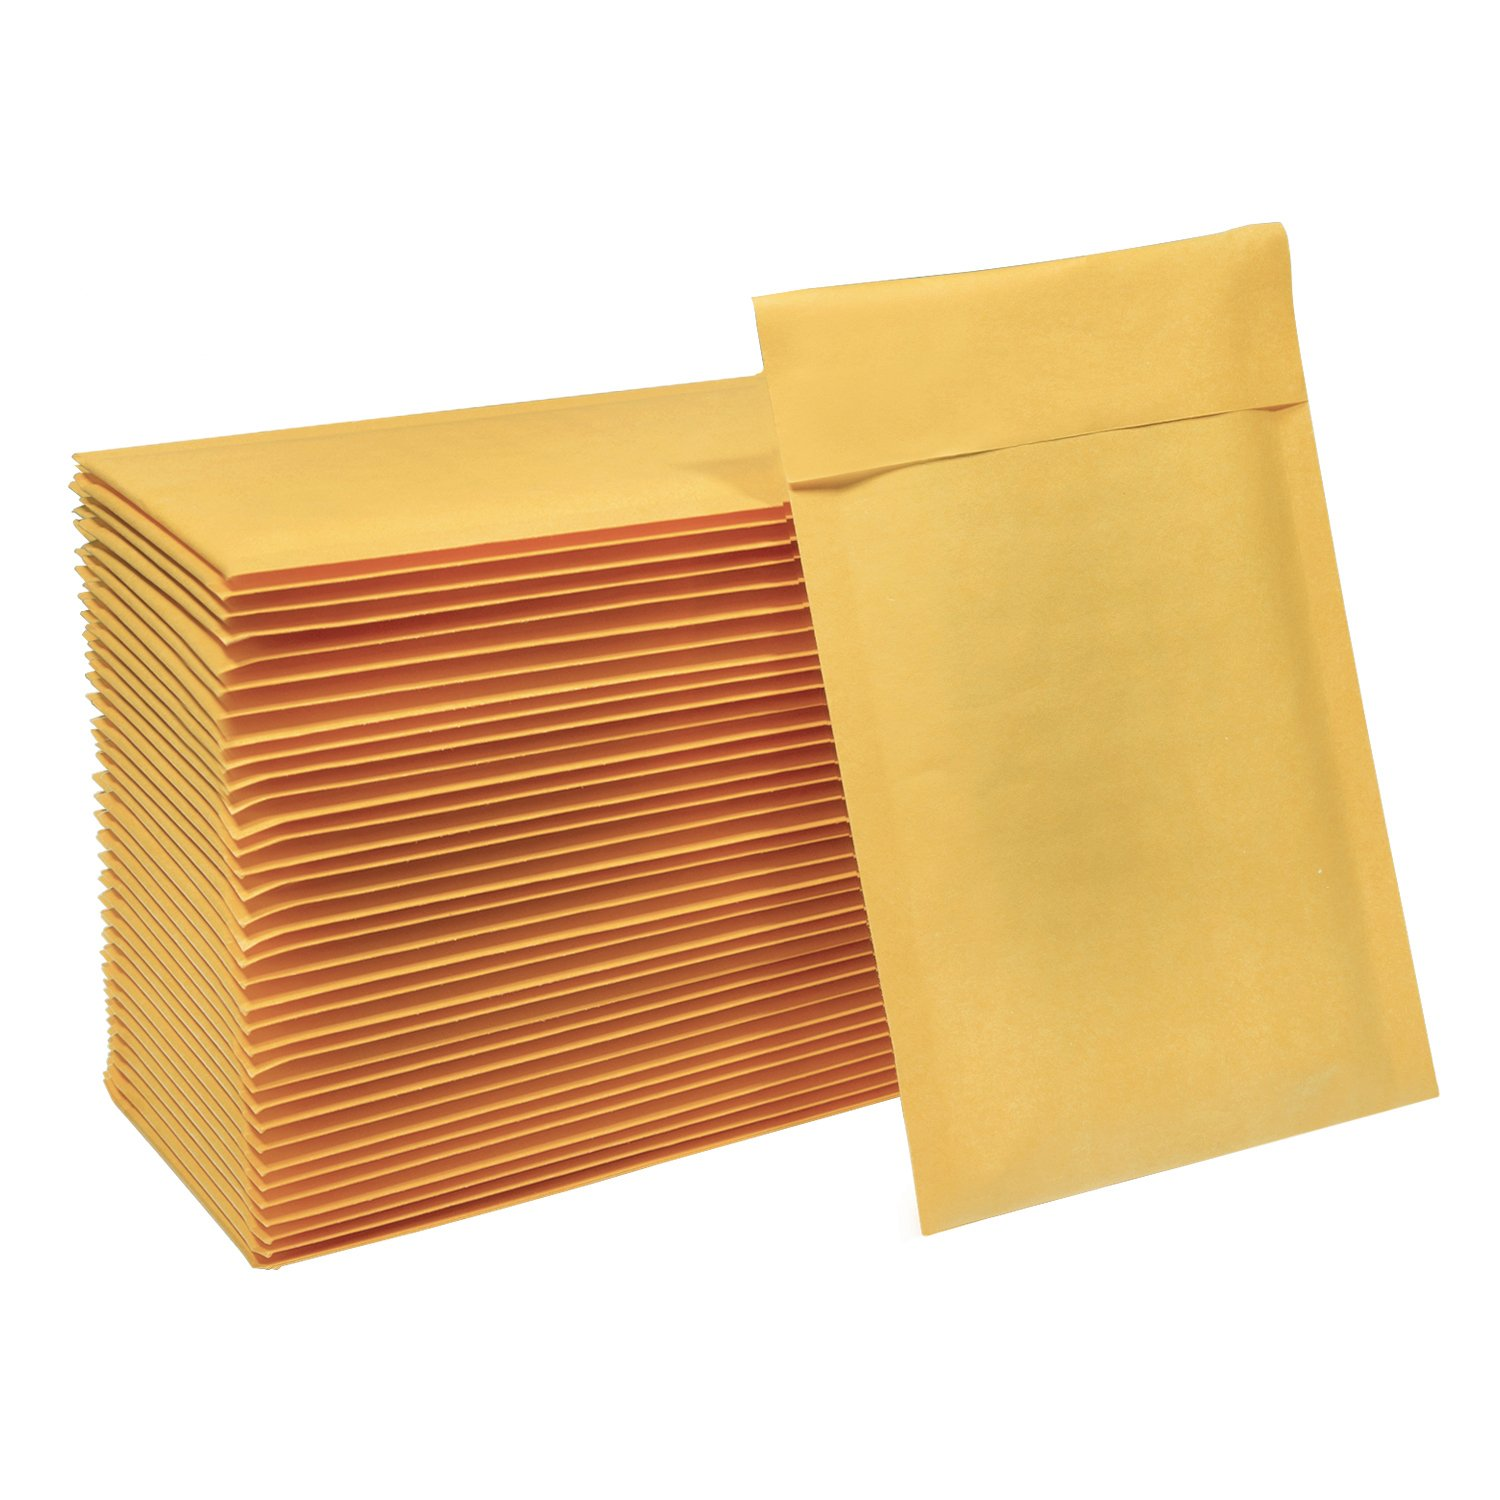 HBlife #000 4x8 Inches Kraft Bubble Mailers Self Seal Padded Envelopes, Pack of 50